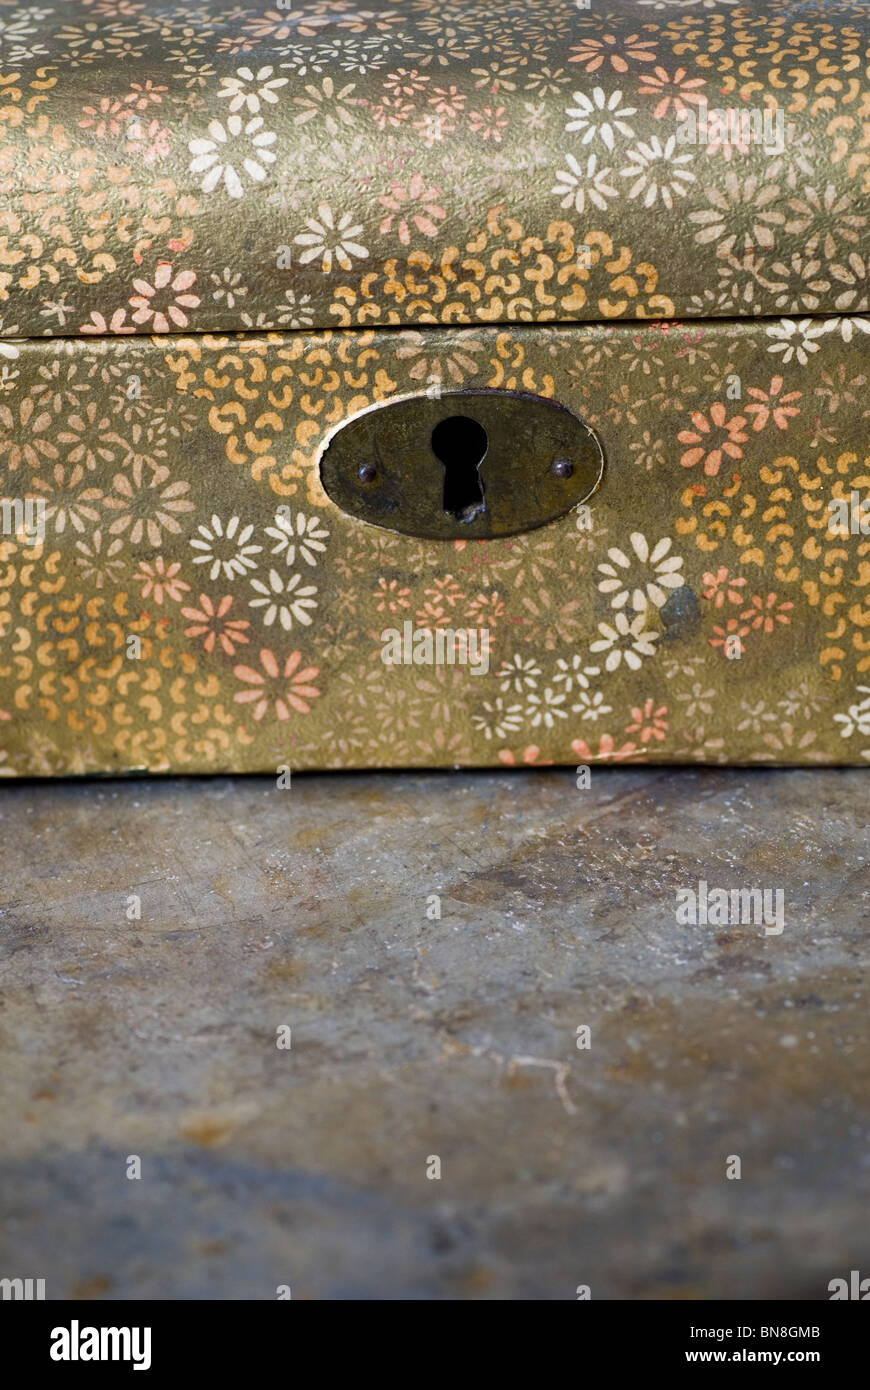 Keyhole of an old jewellery box - Stock Image